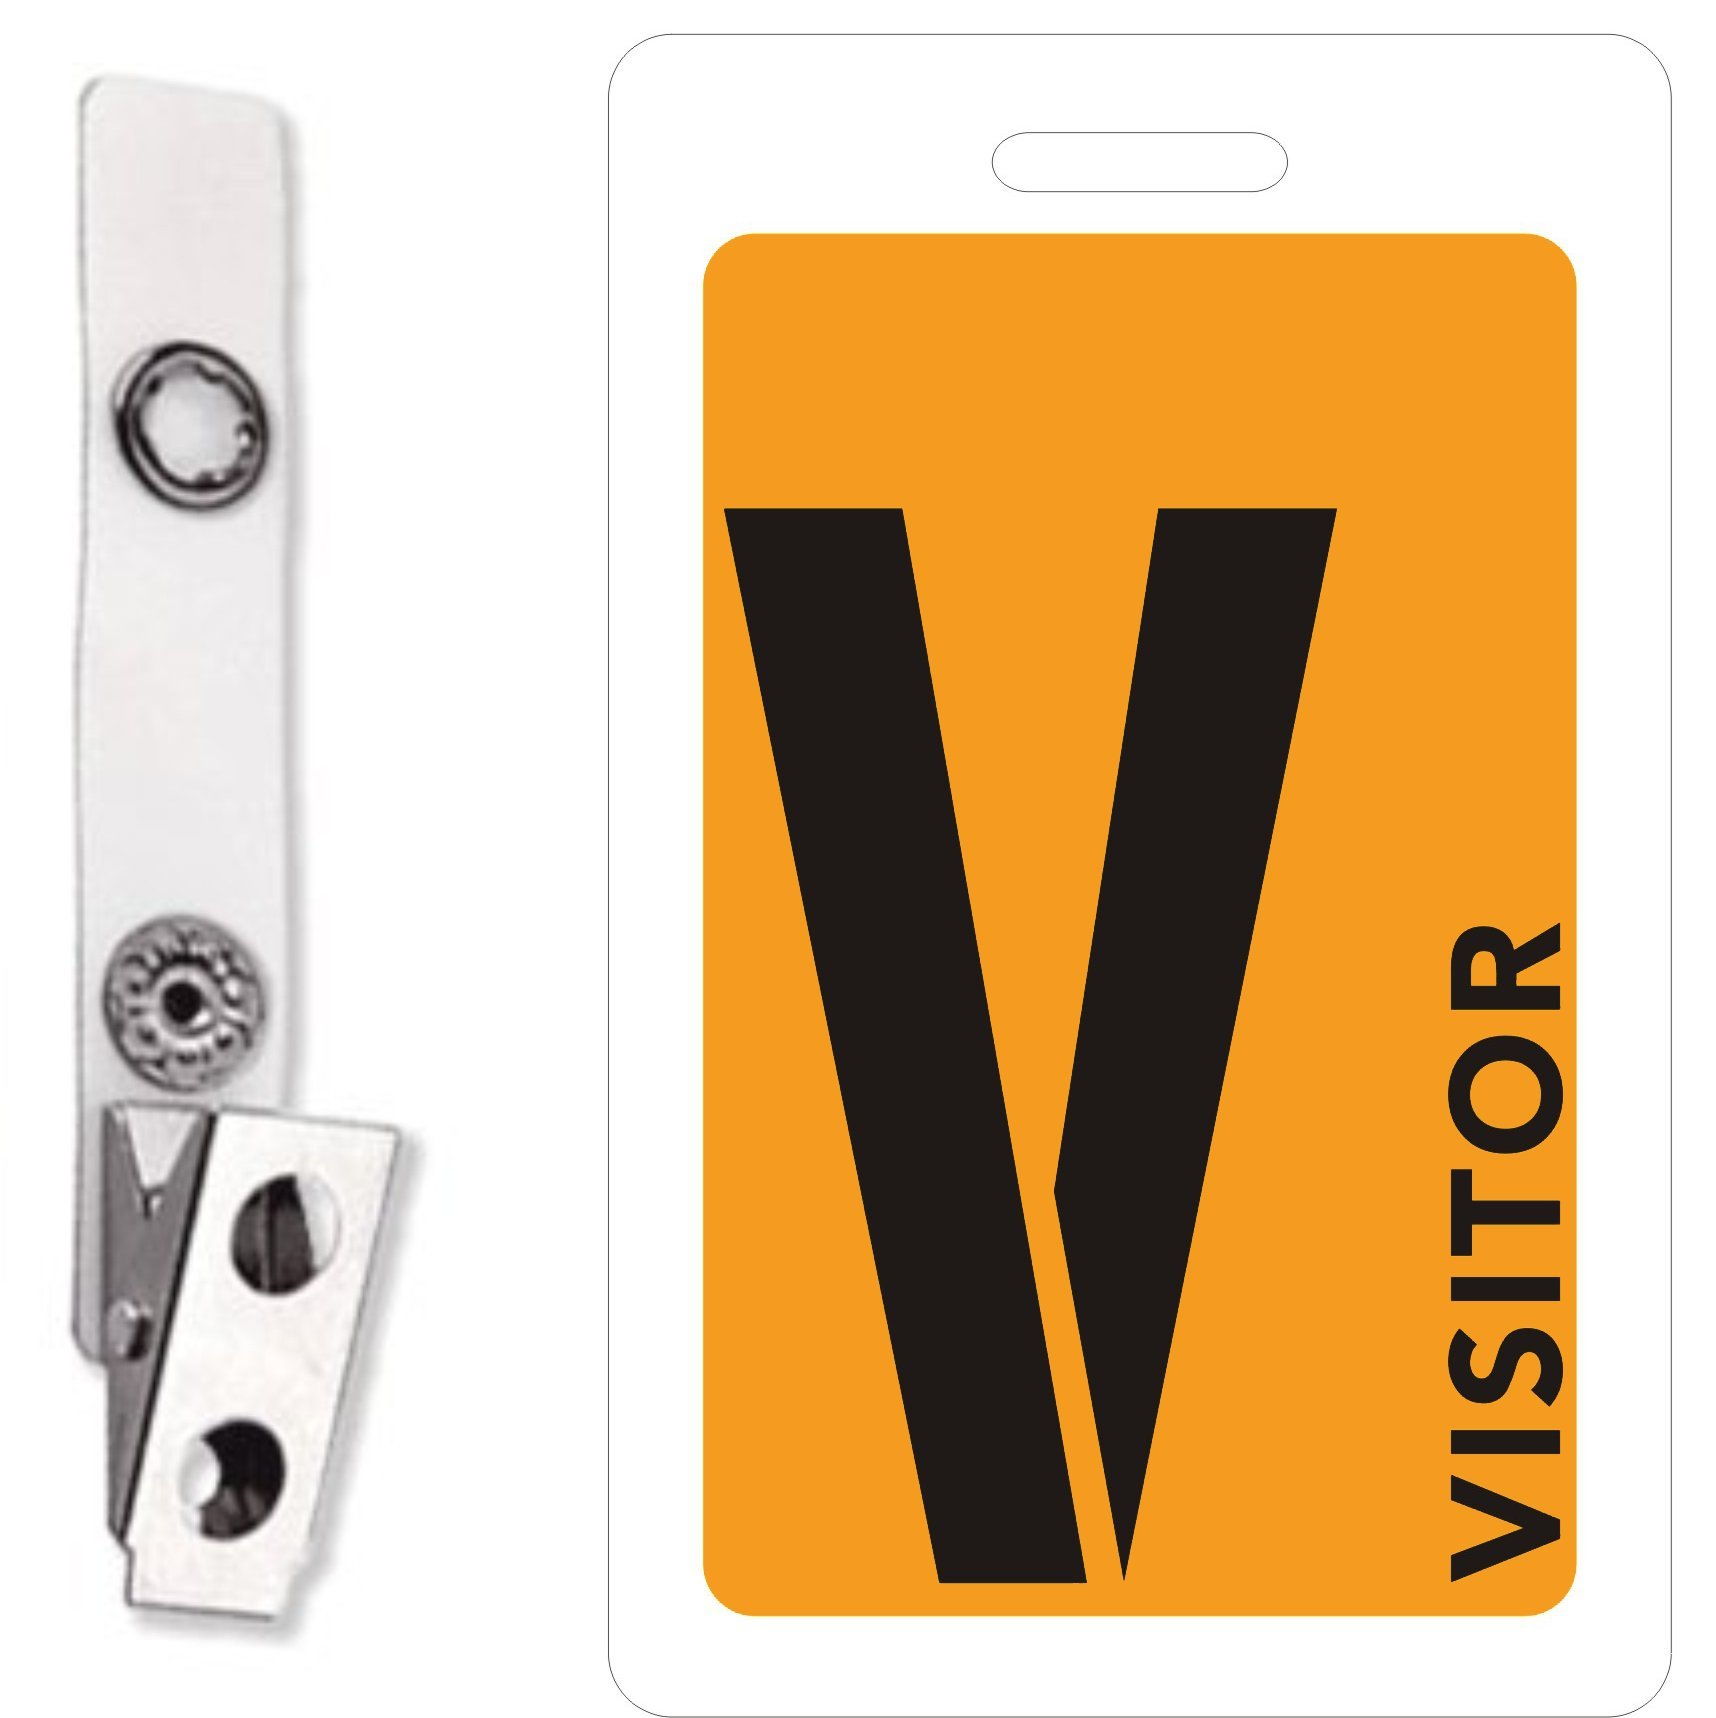 MESS Visitor Badges ID With Clips (Orange) 5-Piece Set for Identification and Safety (3.4 Inches x 2.1 Inches)